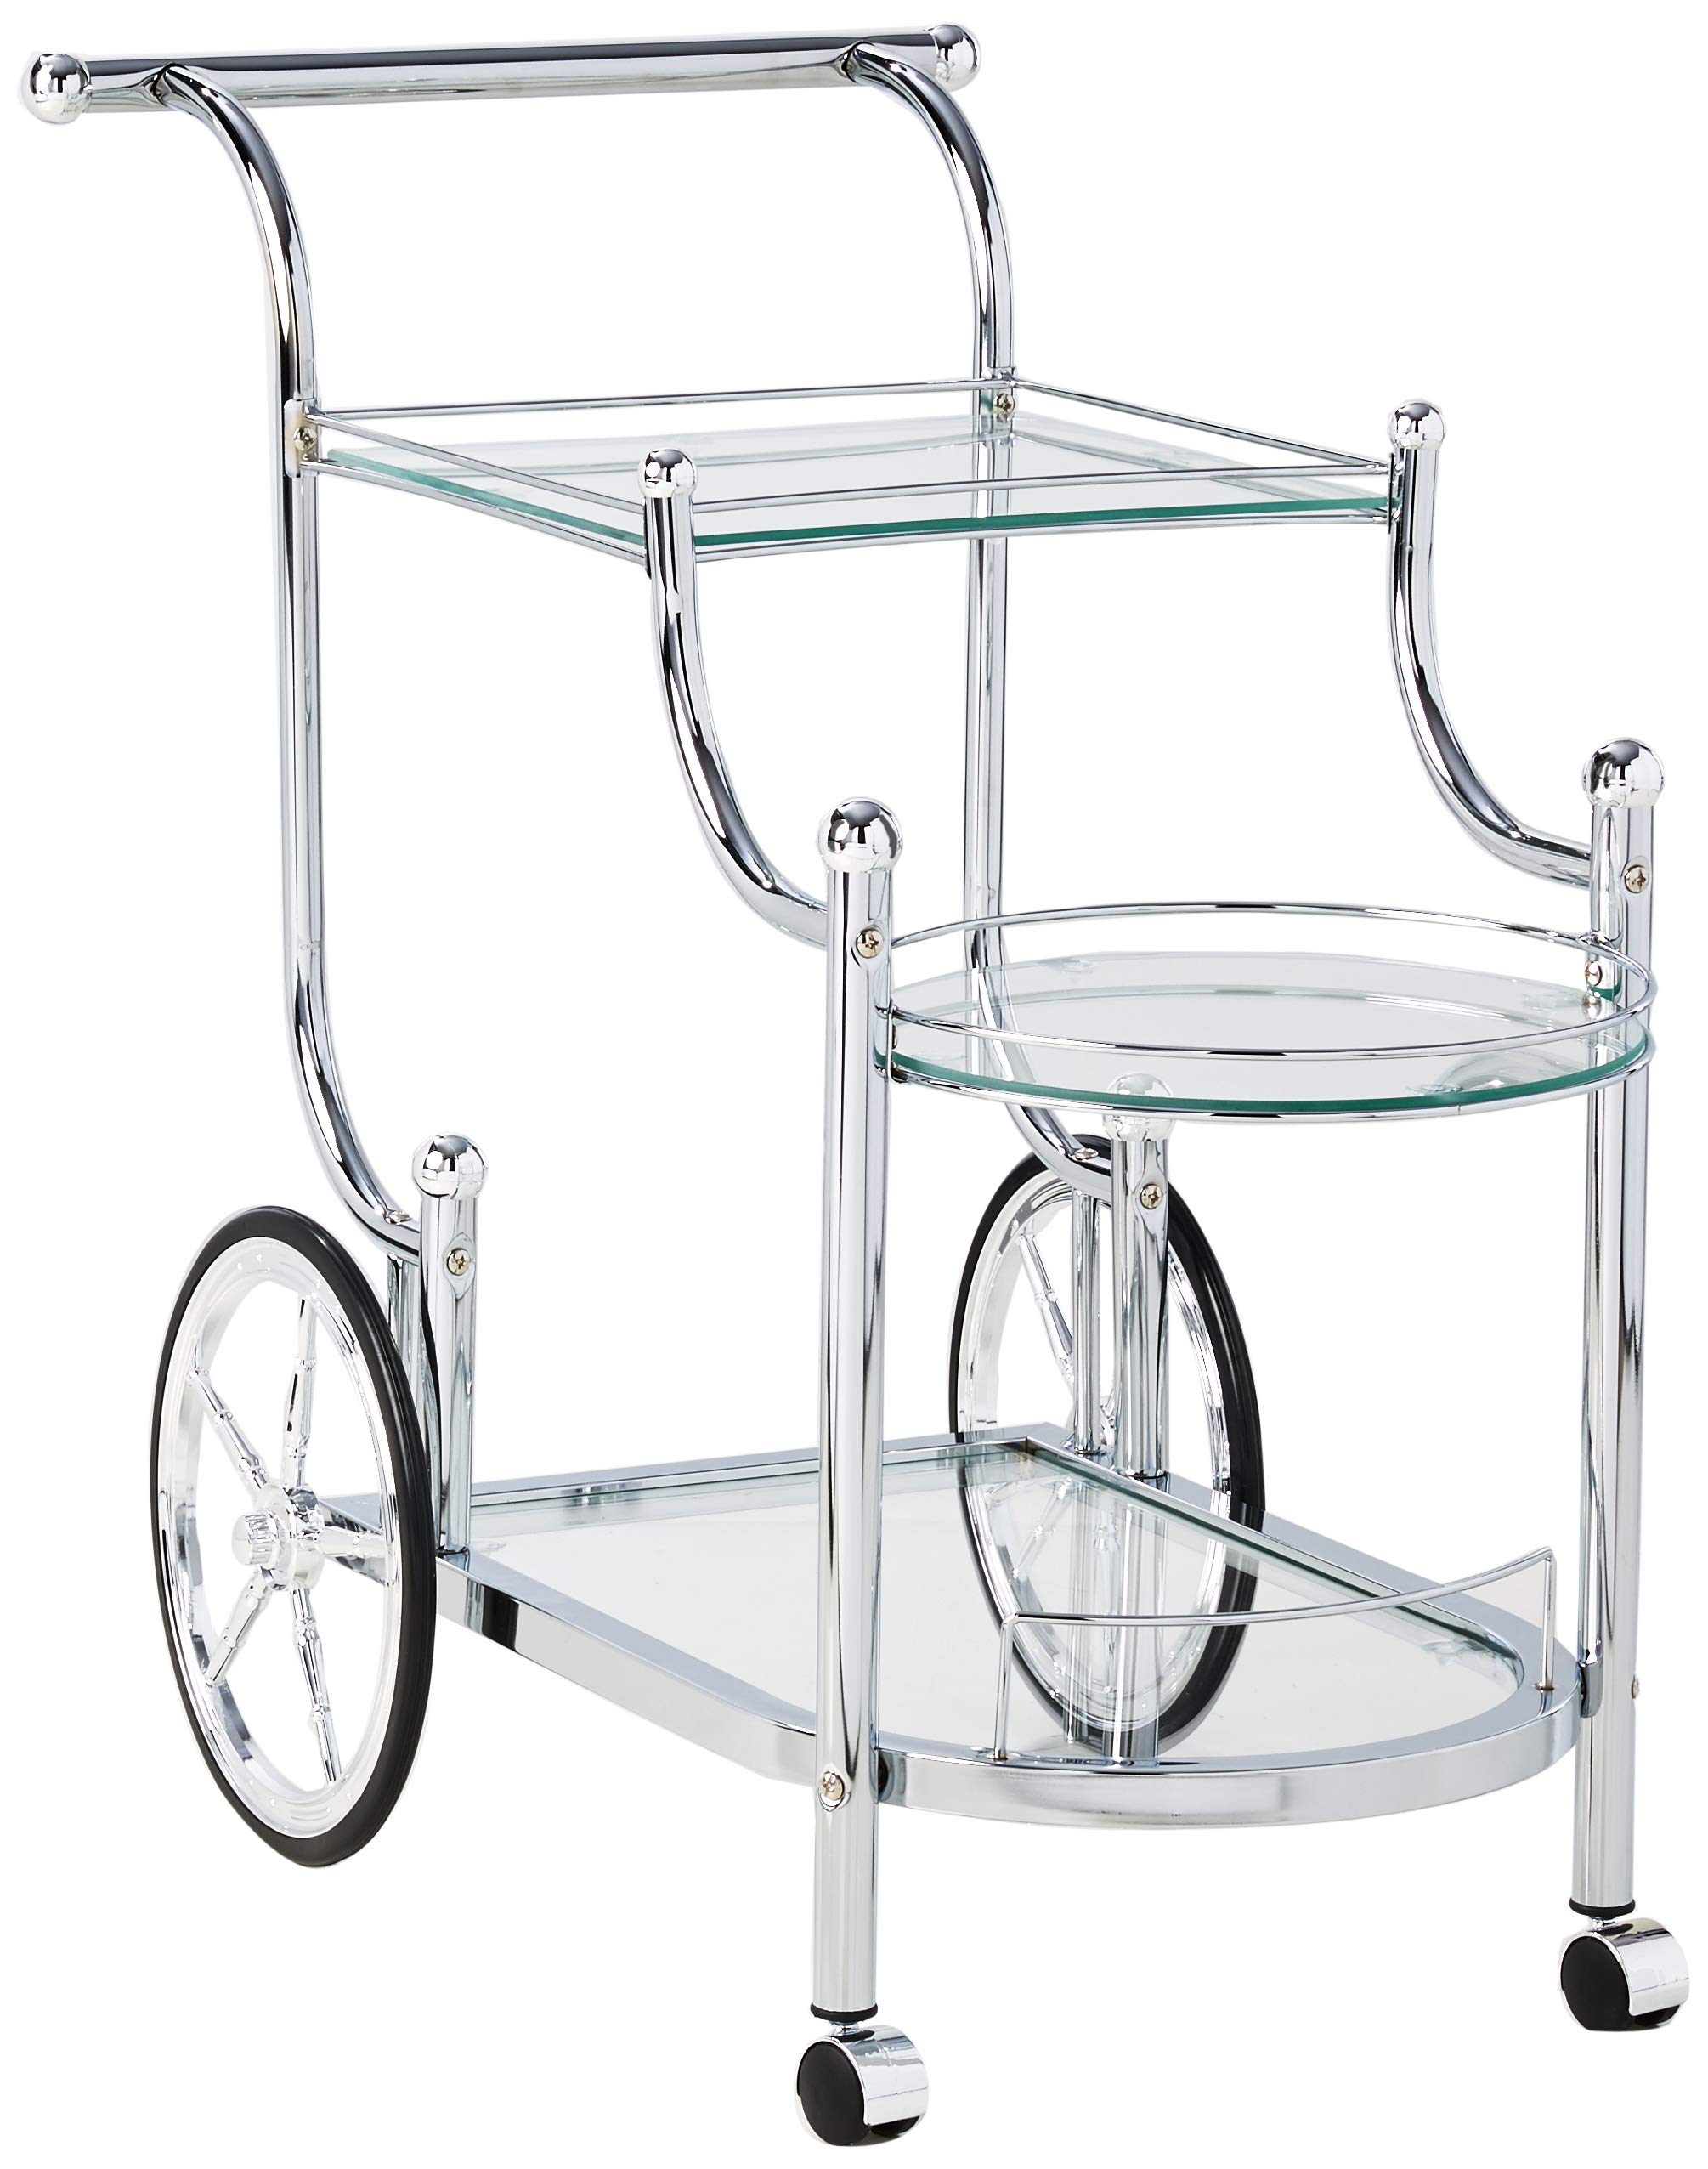 Wheeled Serving Cart with Finials Chrome and Clear by Coaster Home Furnishings